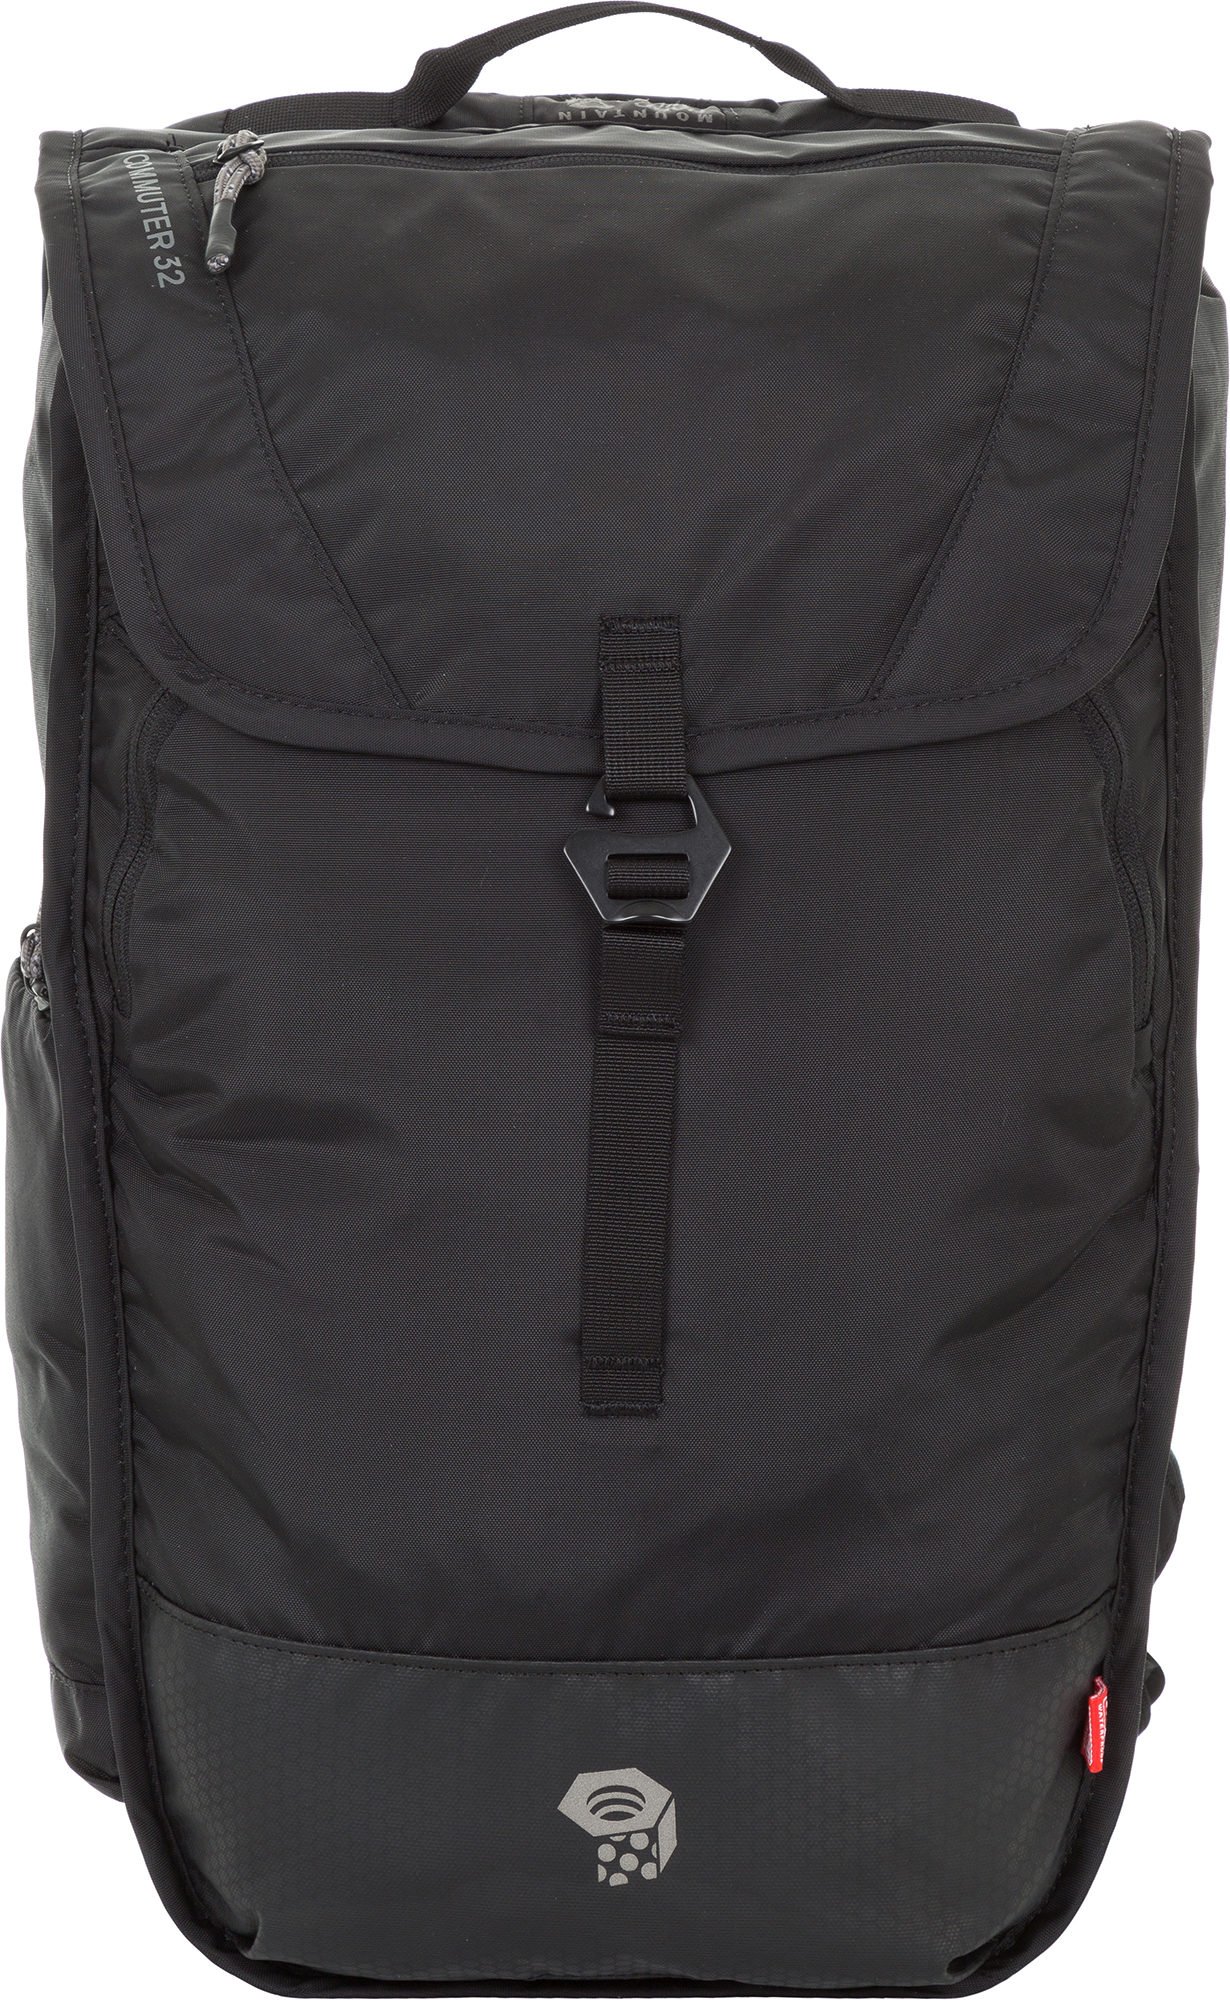 Mountain Hardwear Mountain Hardwear DryCommuter 32L OutDry